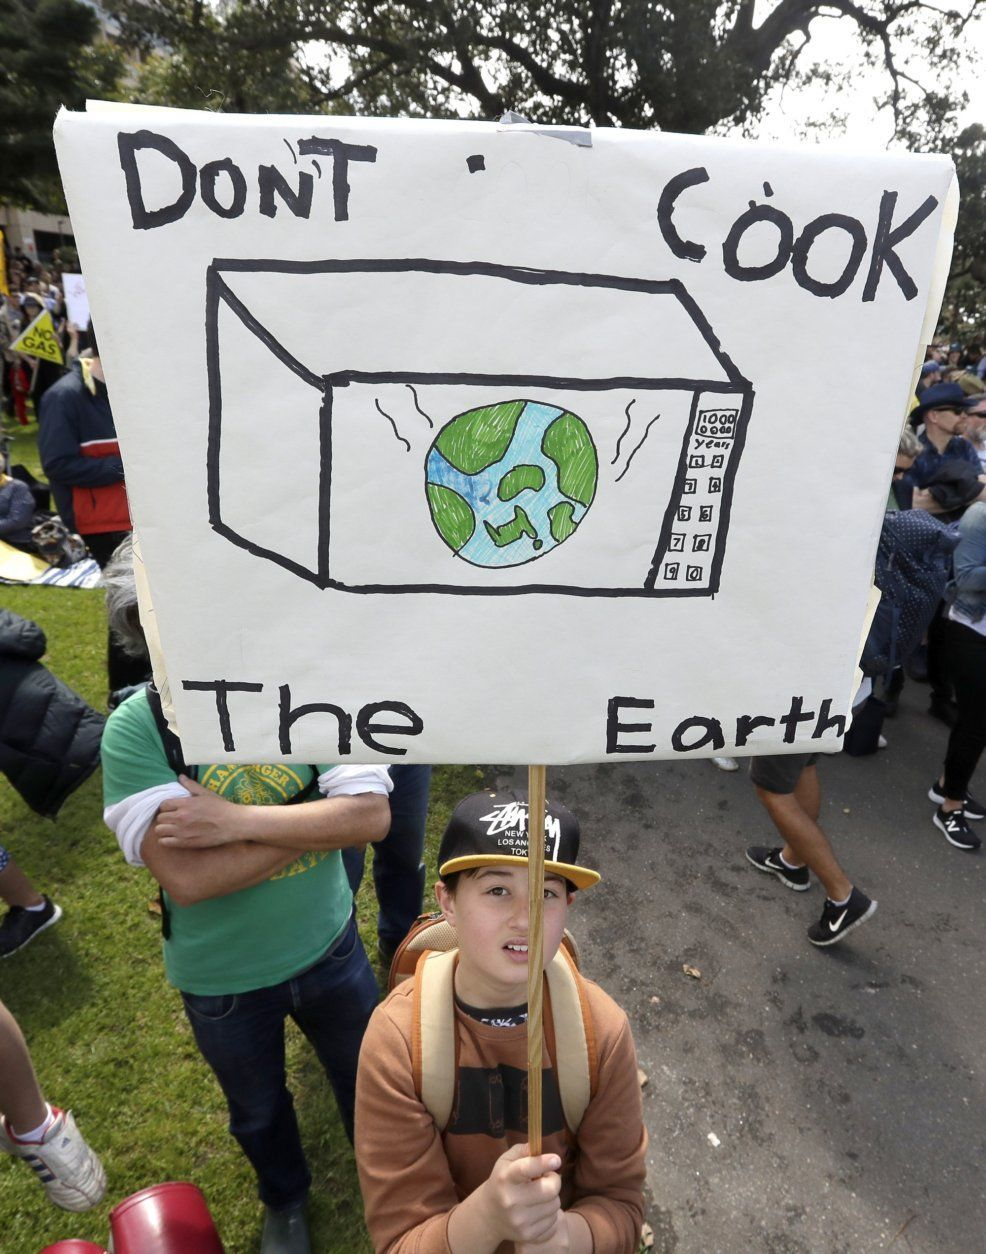 """A young activist holds up a handmade placard as thousands of protestors, many of them school students, gather in Sydney, Friday, Sept. 20, 2019, calling for action to guard against climate change. Australia's acting Prime Minister Michael McCormack has described ongoing climate rallies as """"just a disruption"""" that should have been held on a weekend to avoid inconveniencing communities. (AP Photo/Rick Rycroft)"""